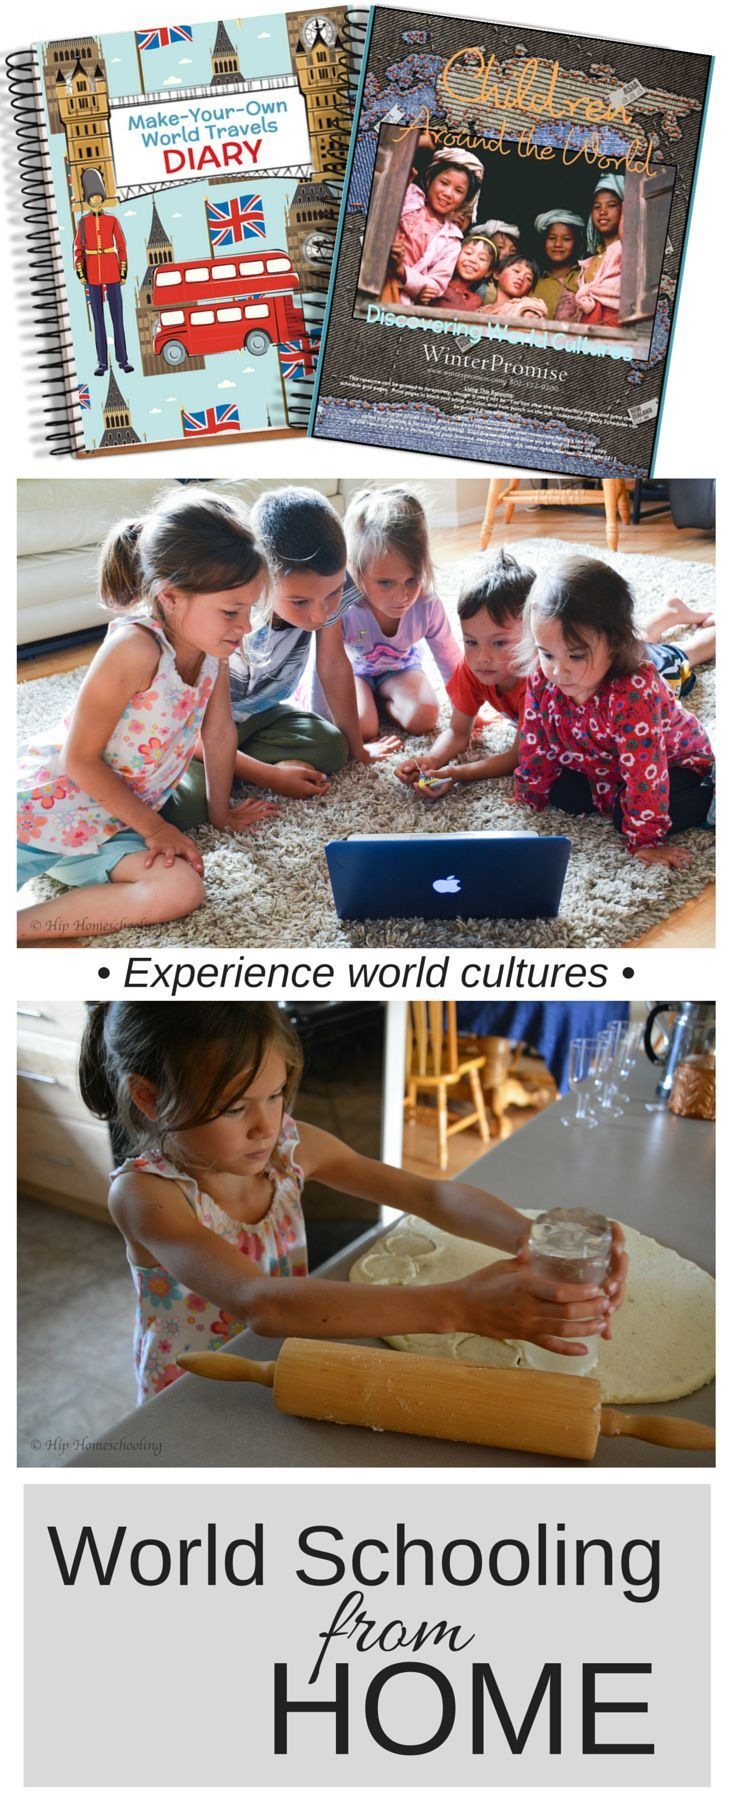 World Schooling from Home: Ideas for learning about other cultures from the comfort of your own home.